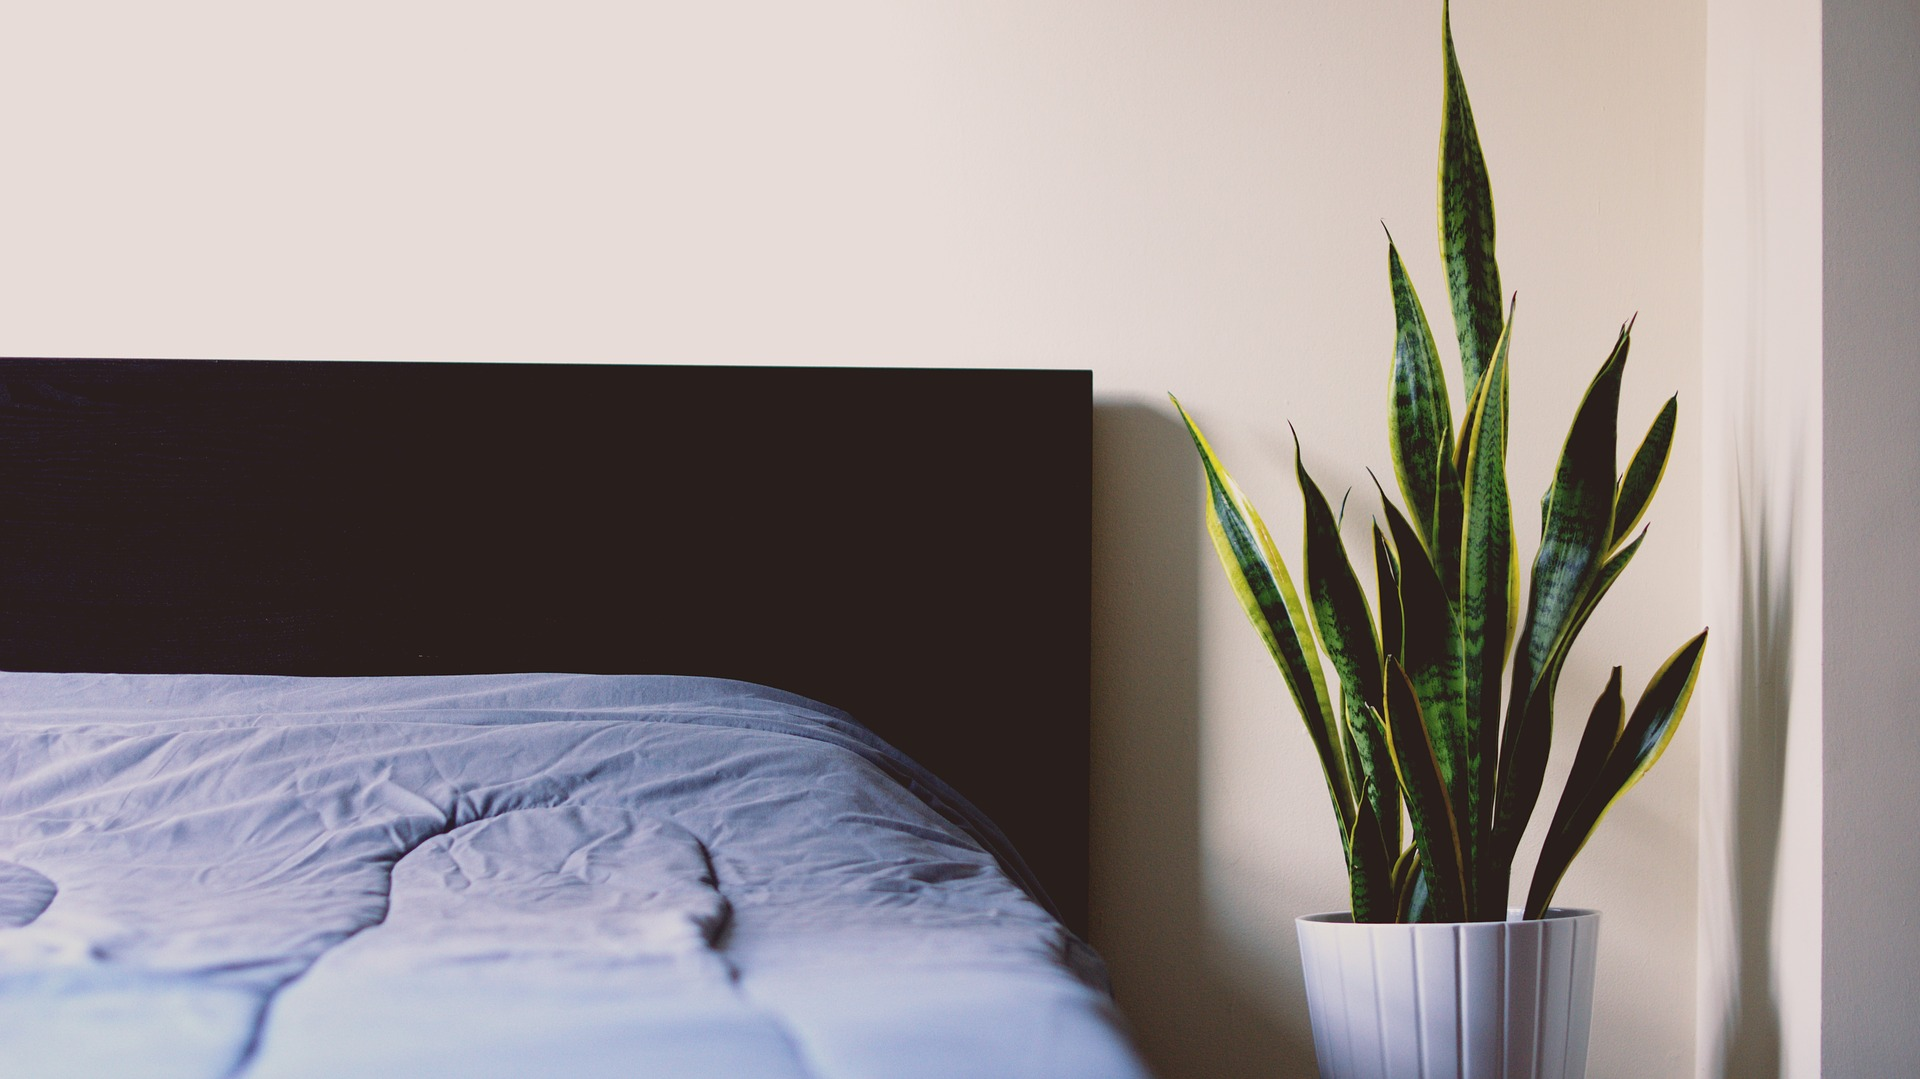 Bed with plant.jpg